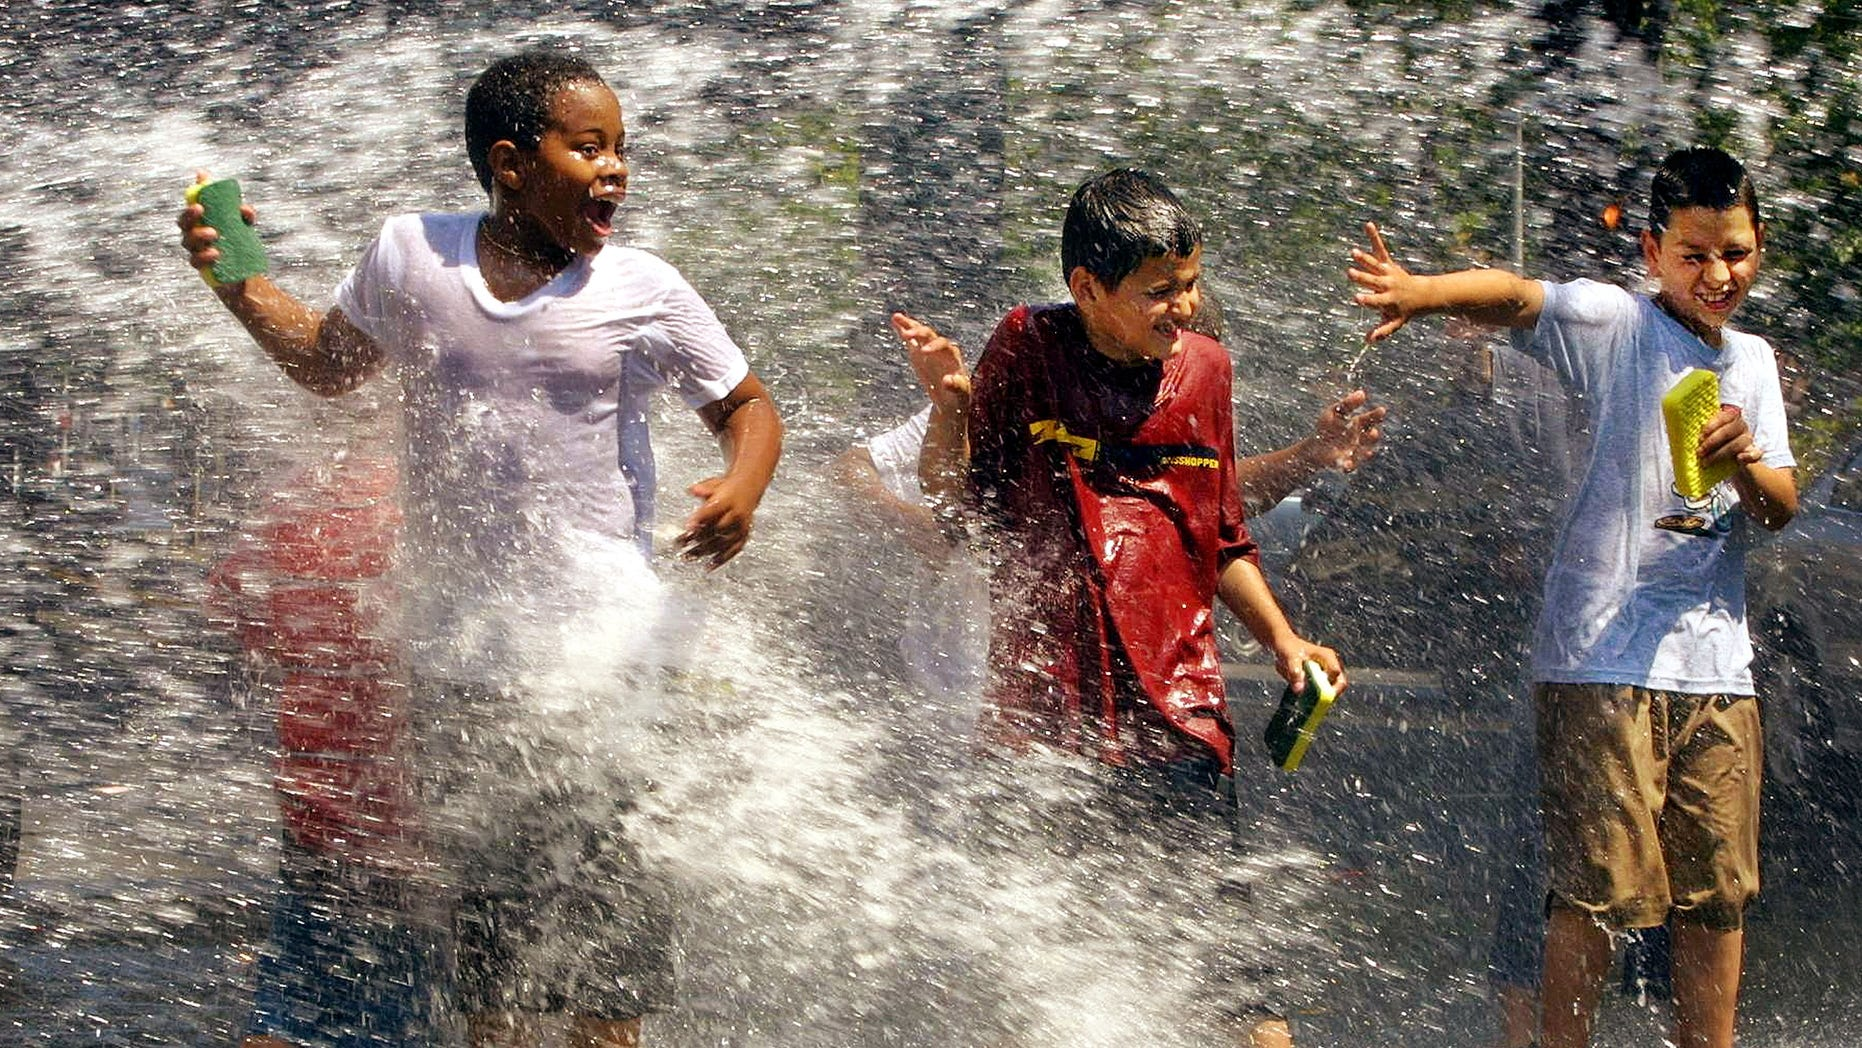 Children use a fire hydrant to cool off while washing cars in Washington Heights, New York City.